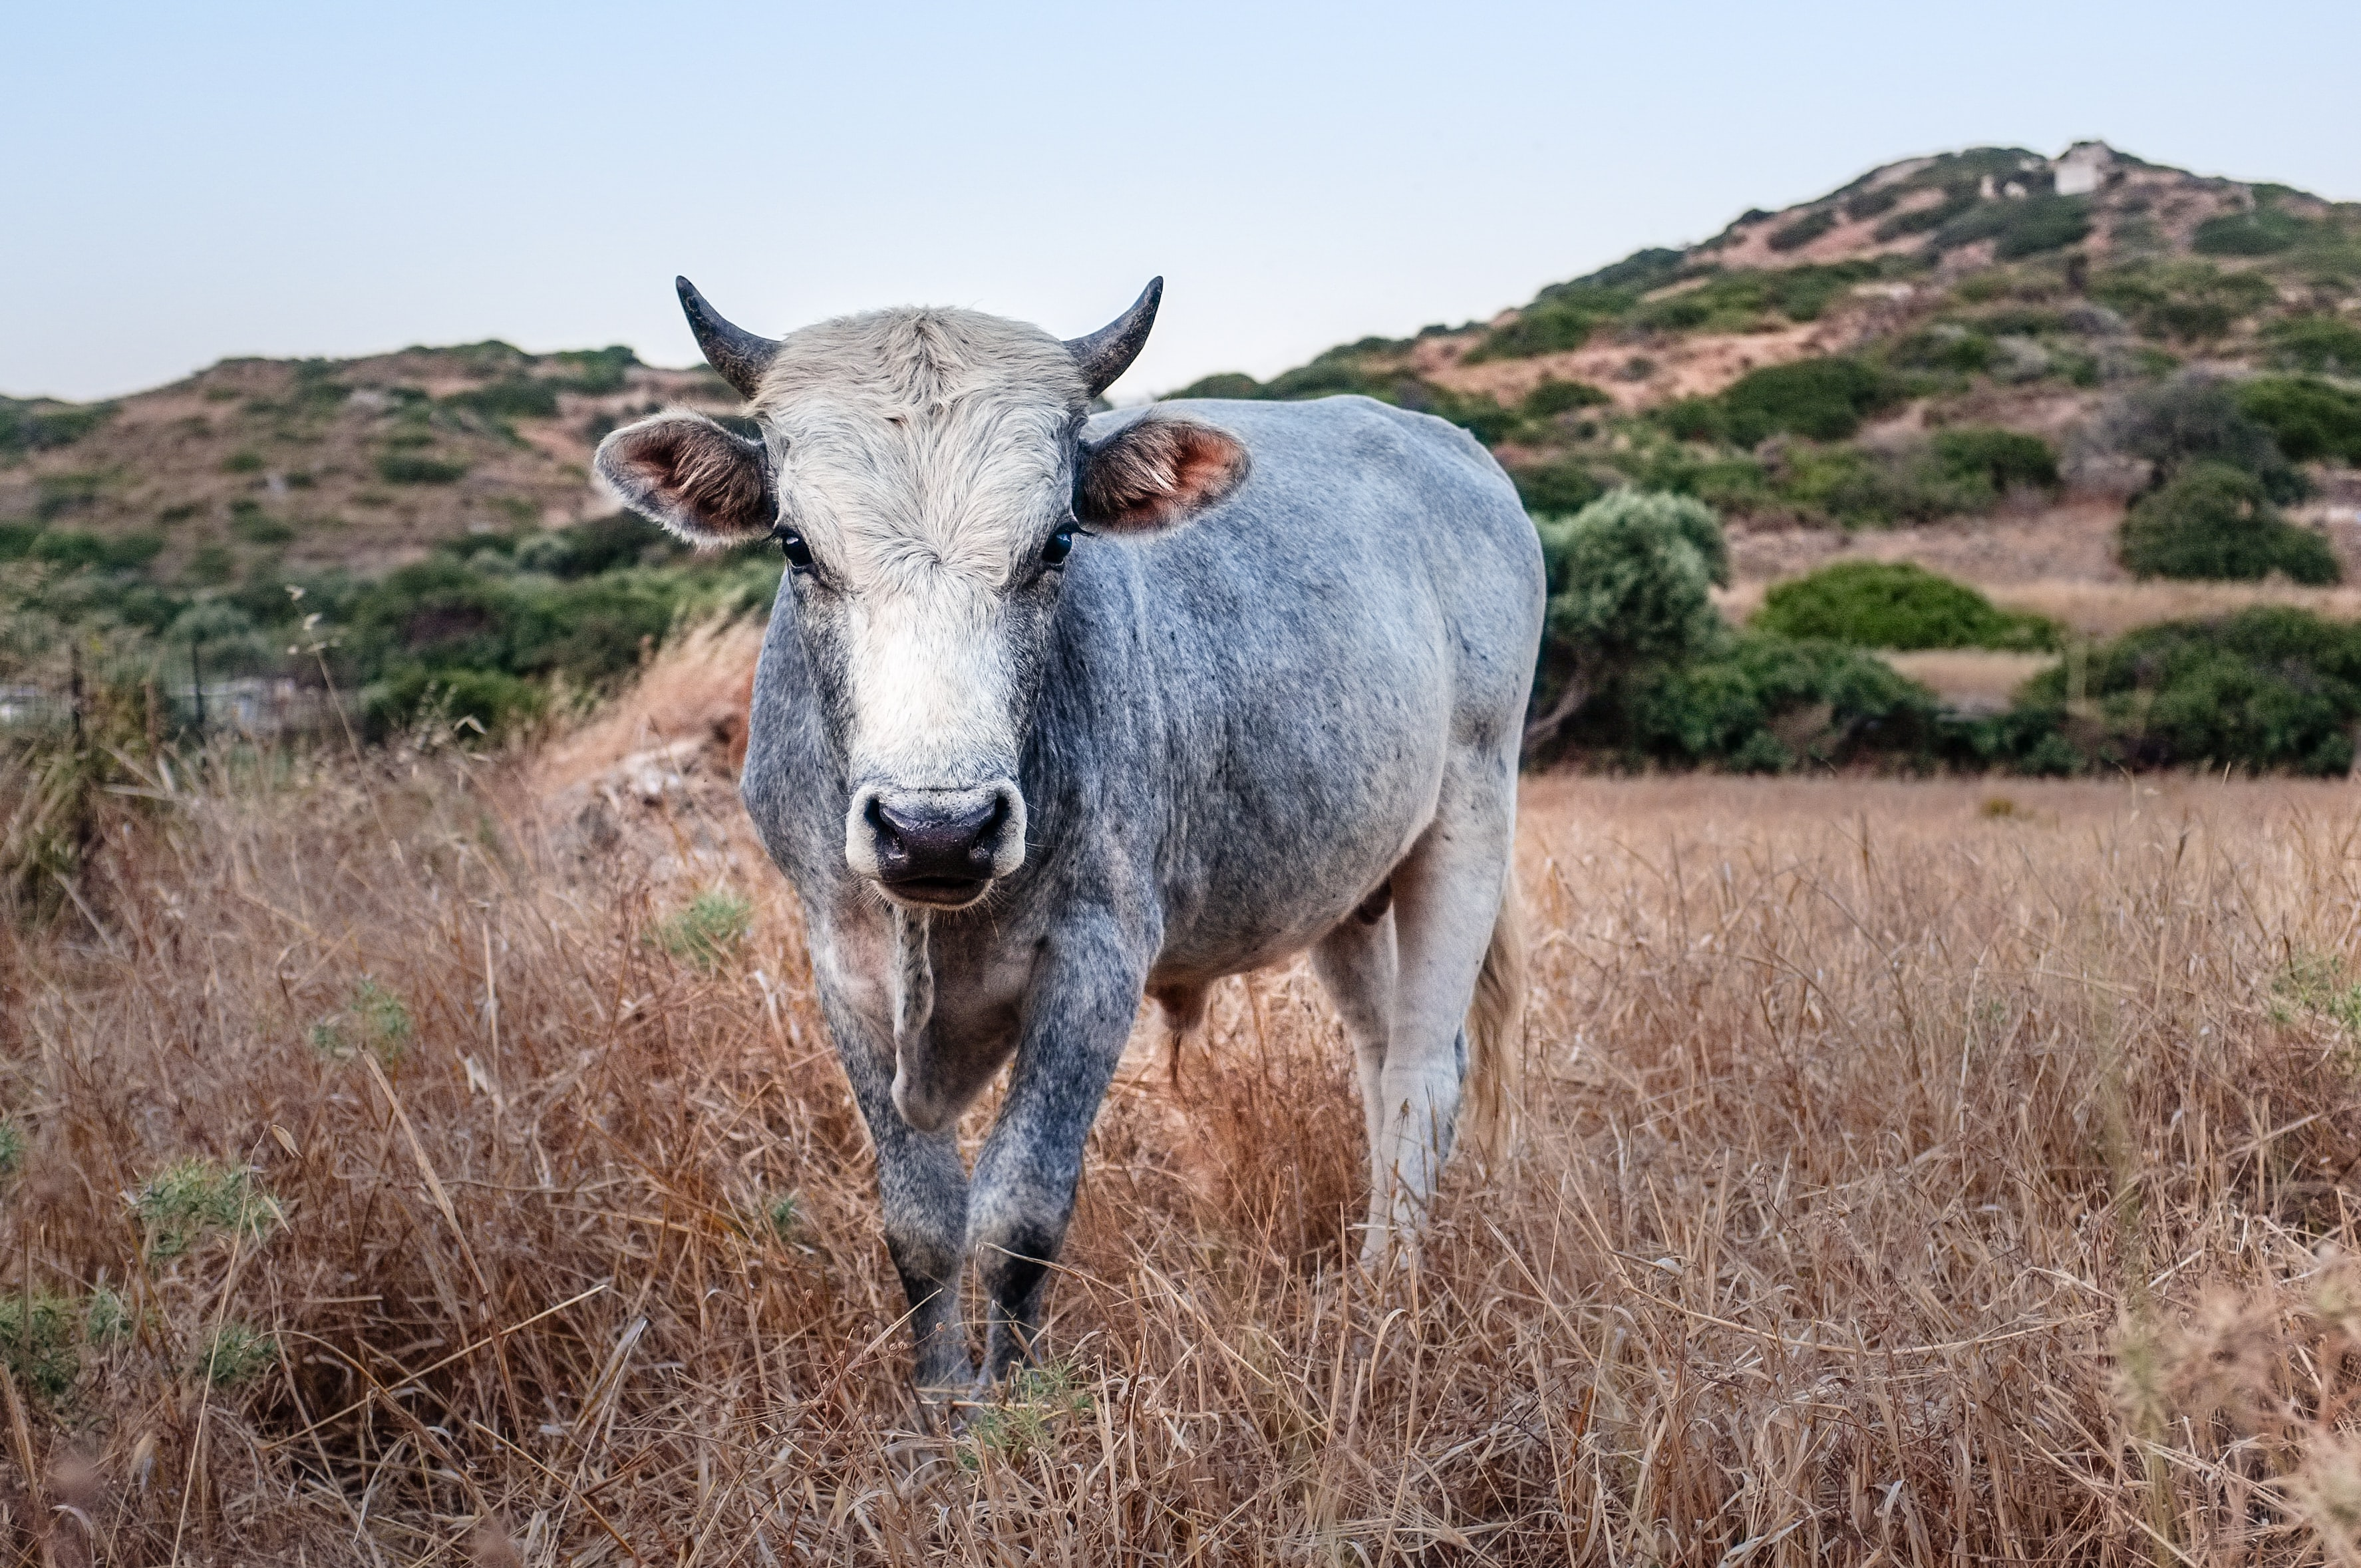 gray cow on grass field during daytime